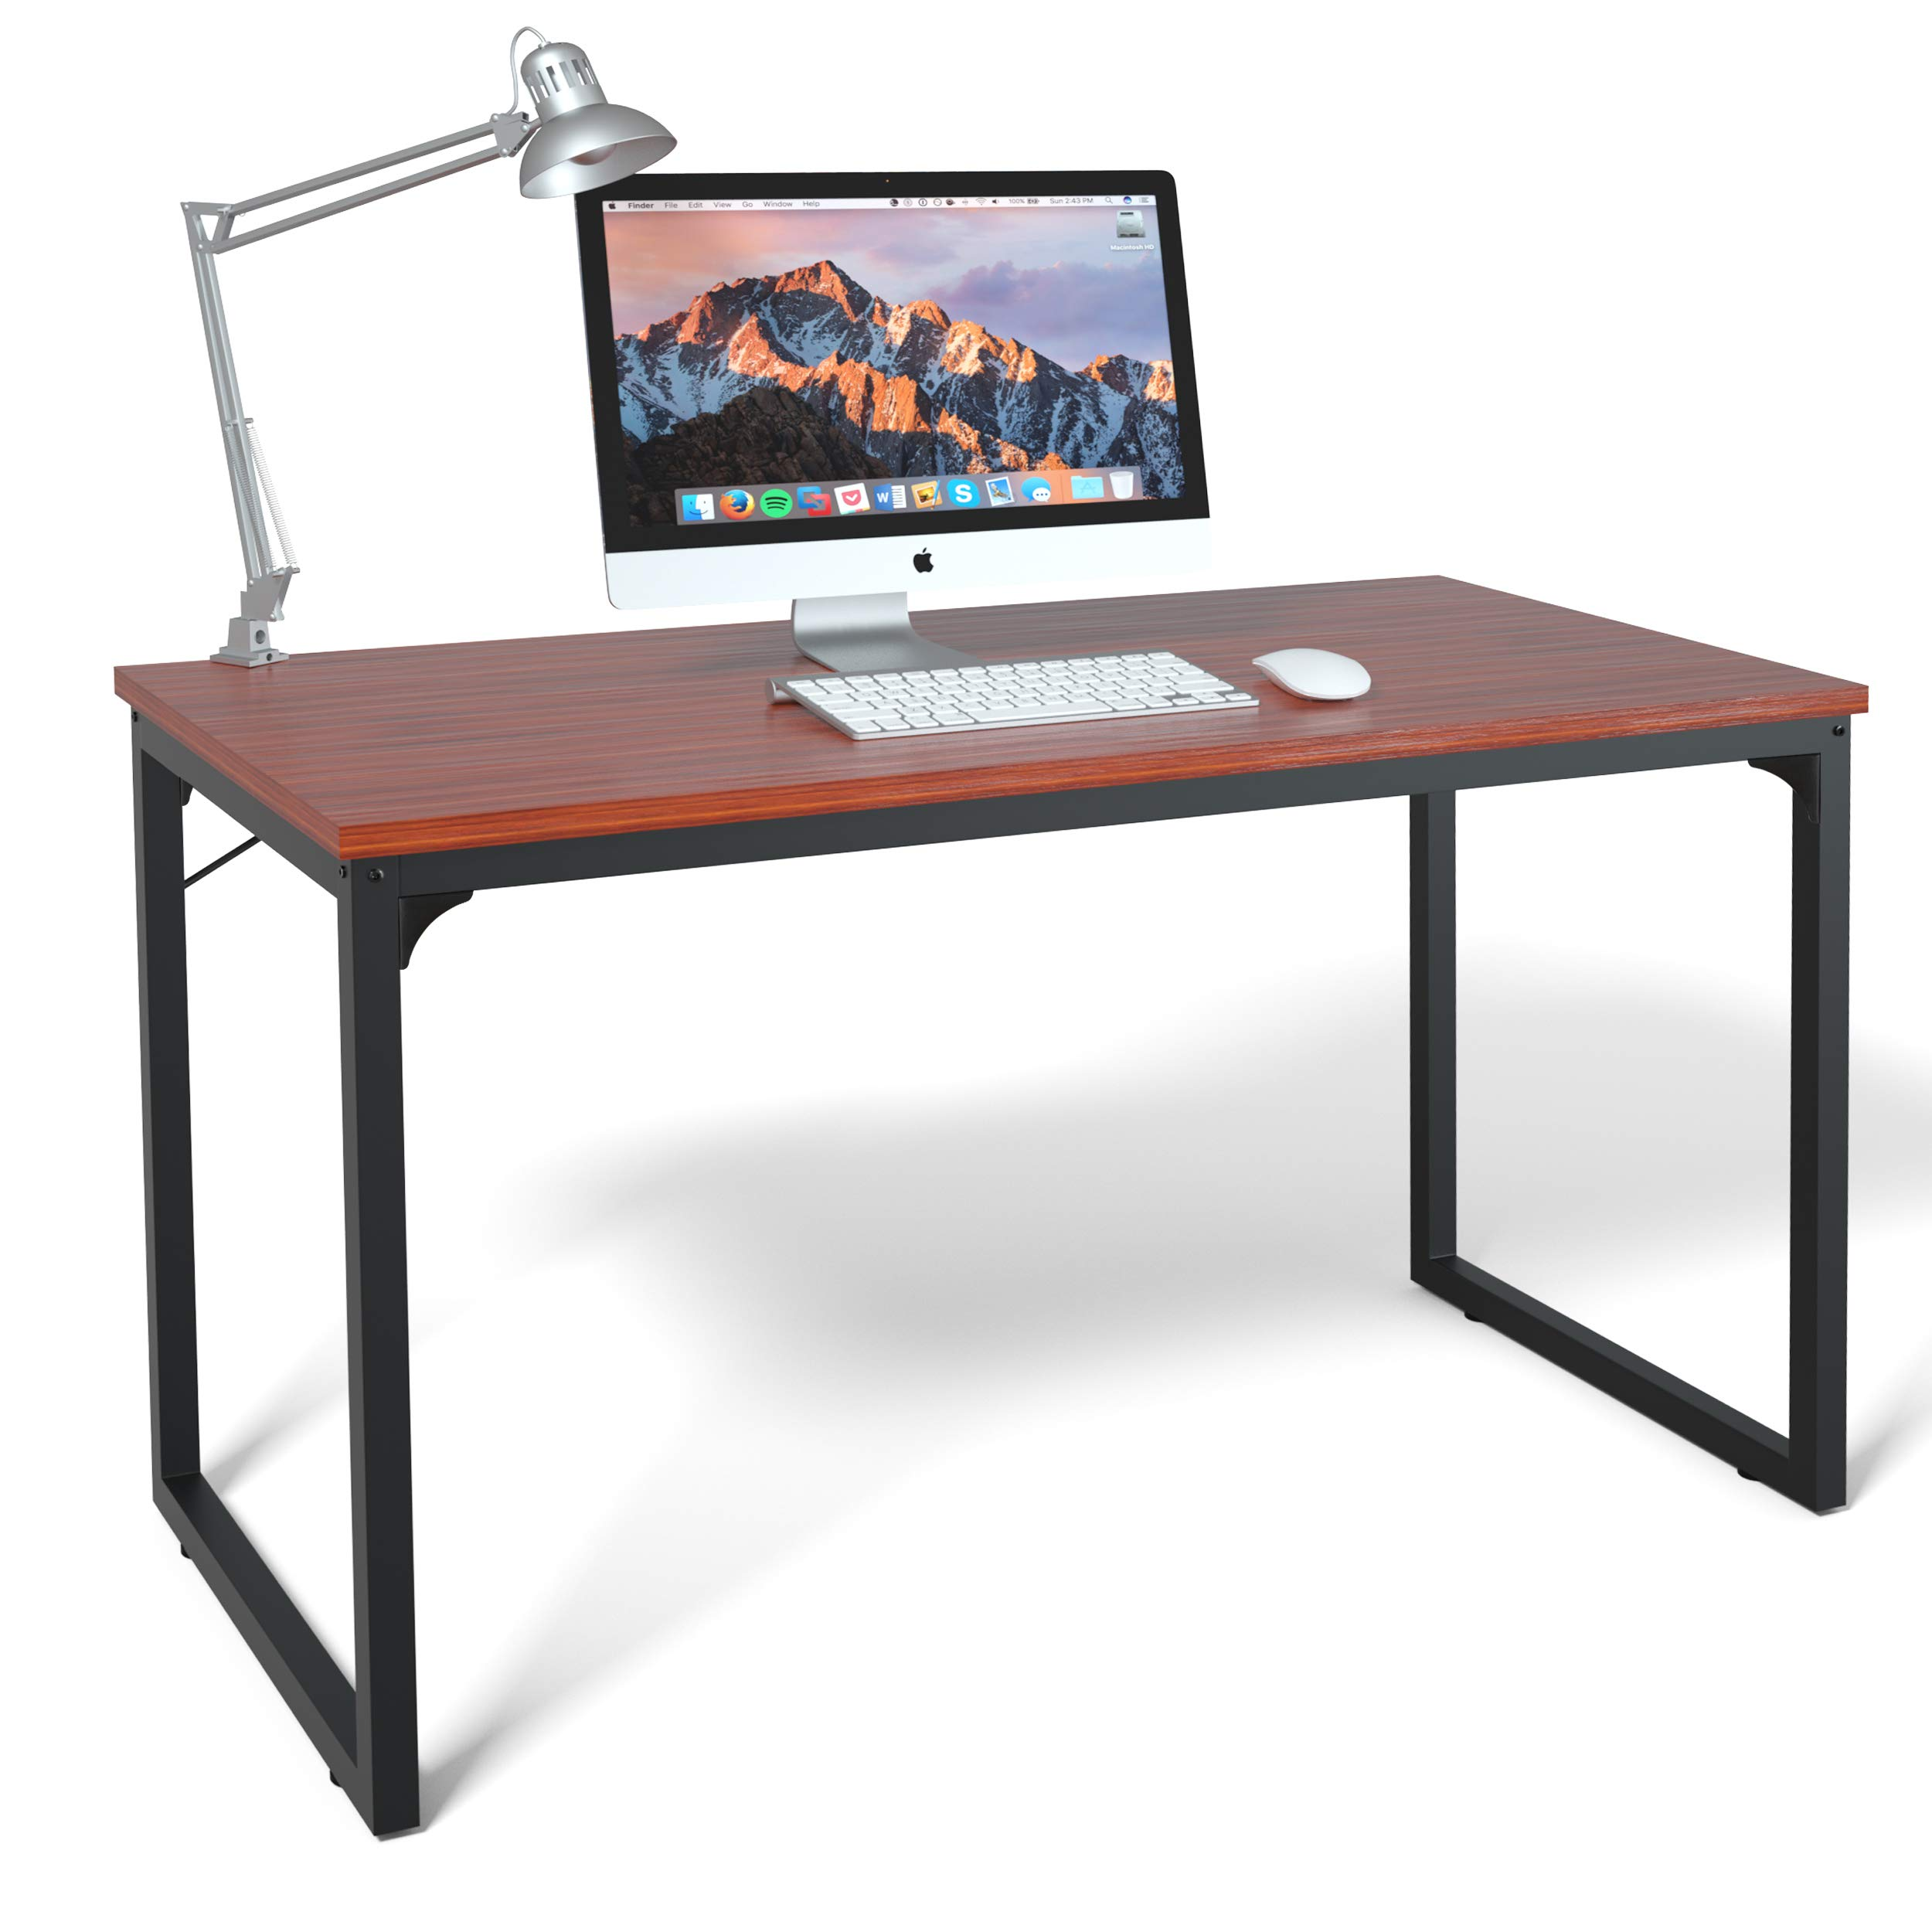 Computer Desk 47'', Modern Simple Style Desk for Home Office, Sturdy Writing Desk, Coleshome, Teak by Coleshome (Image #6)